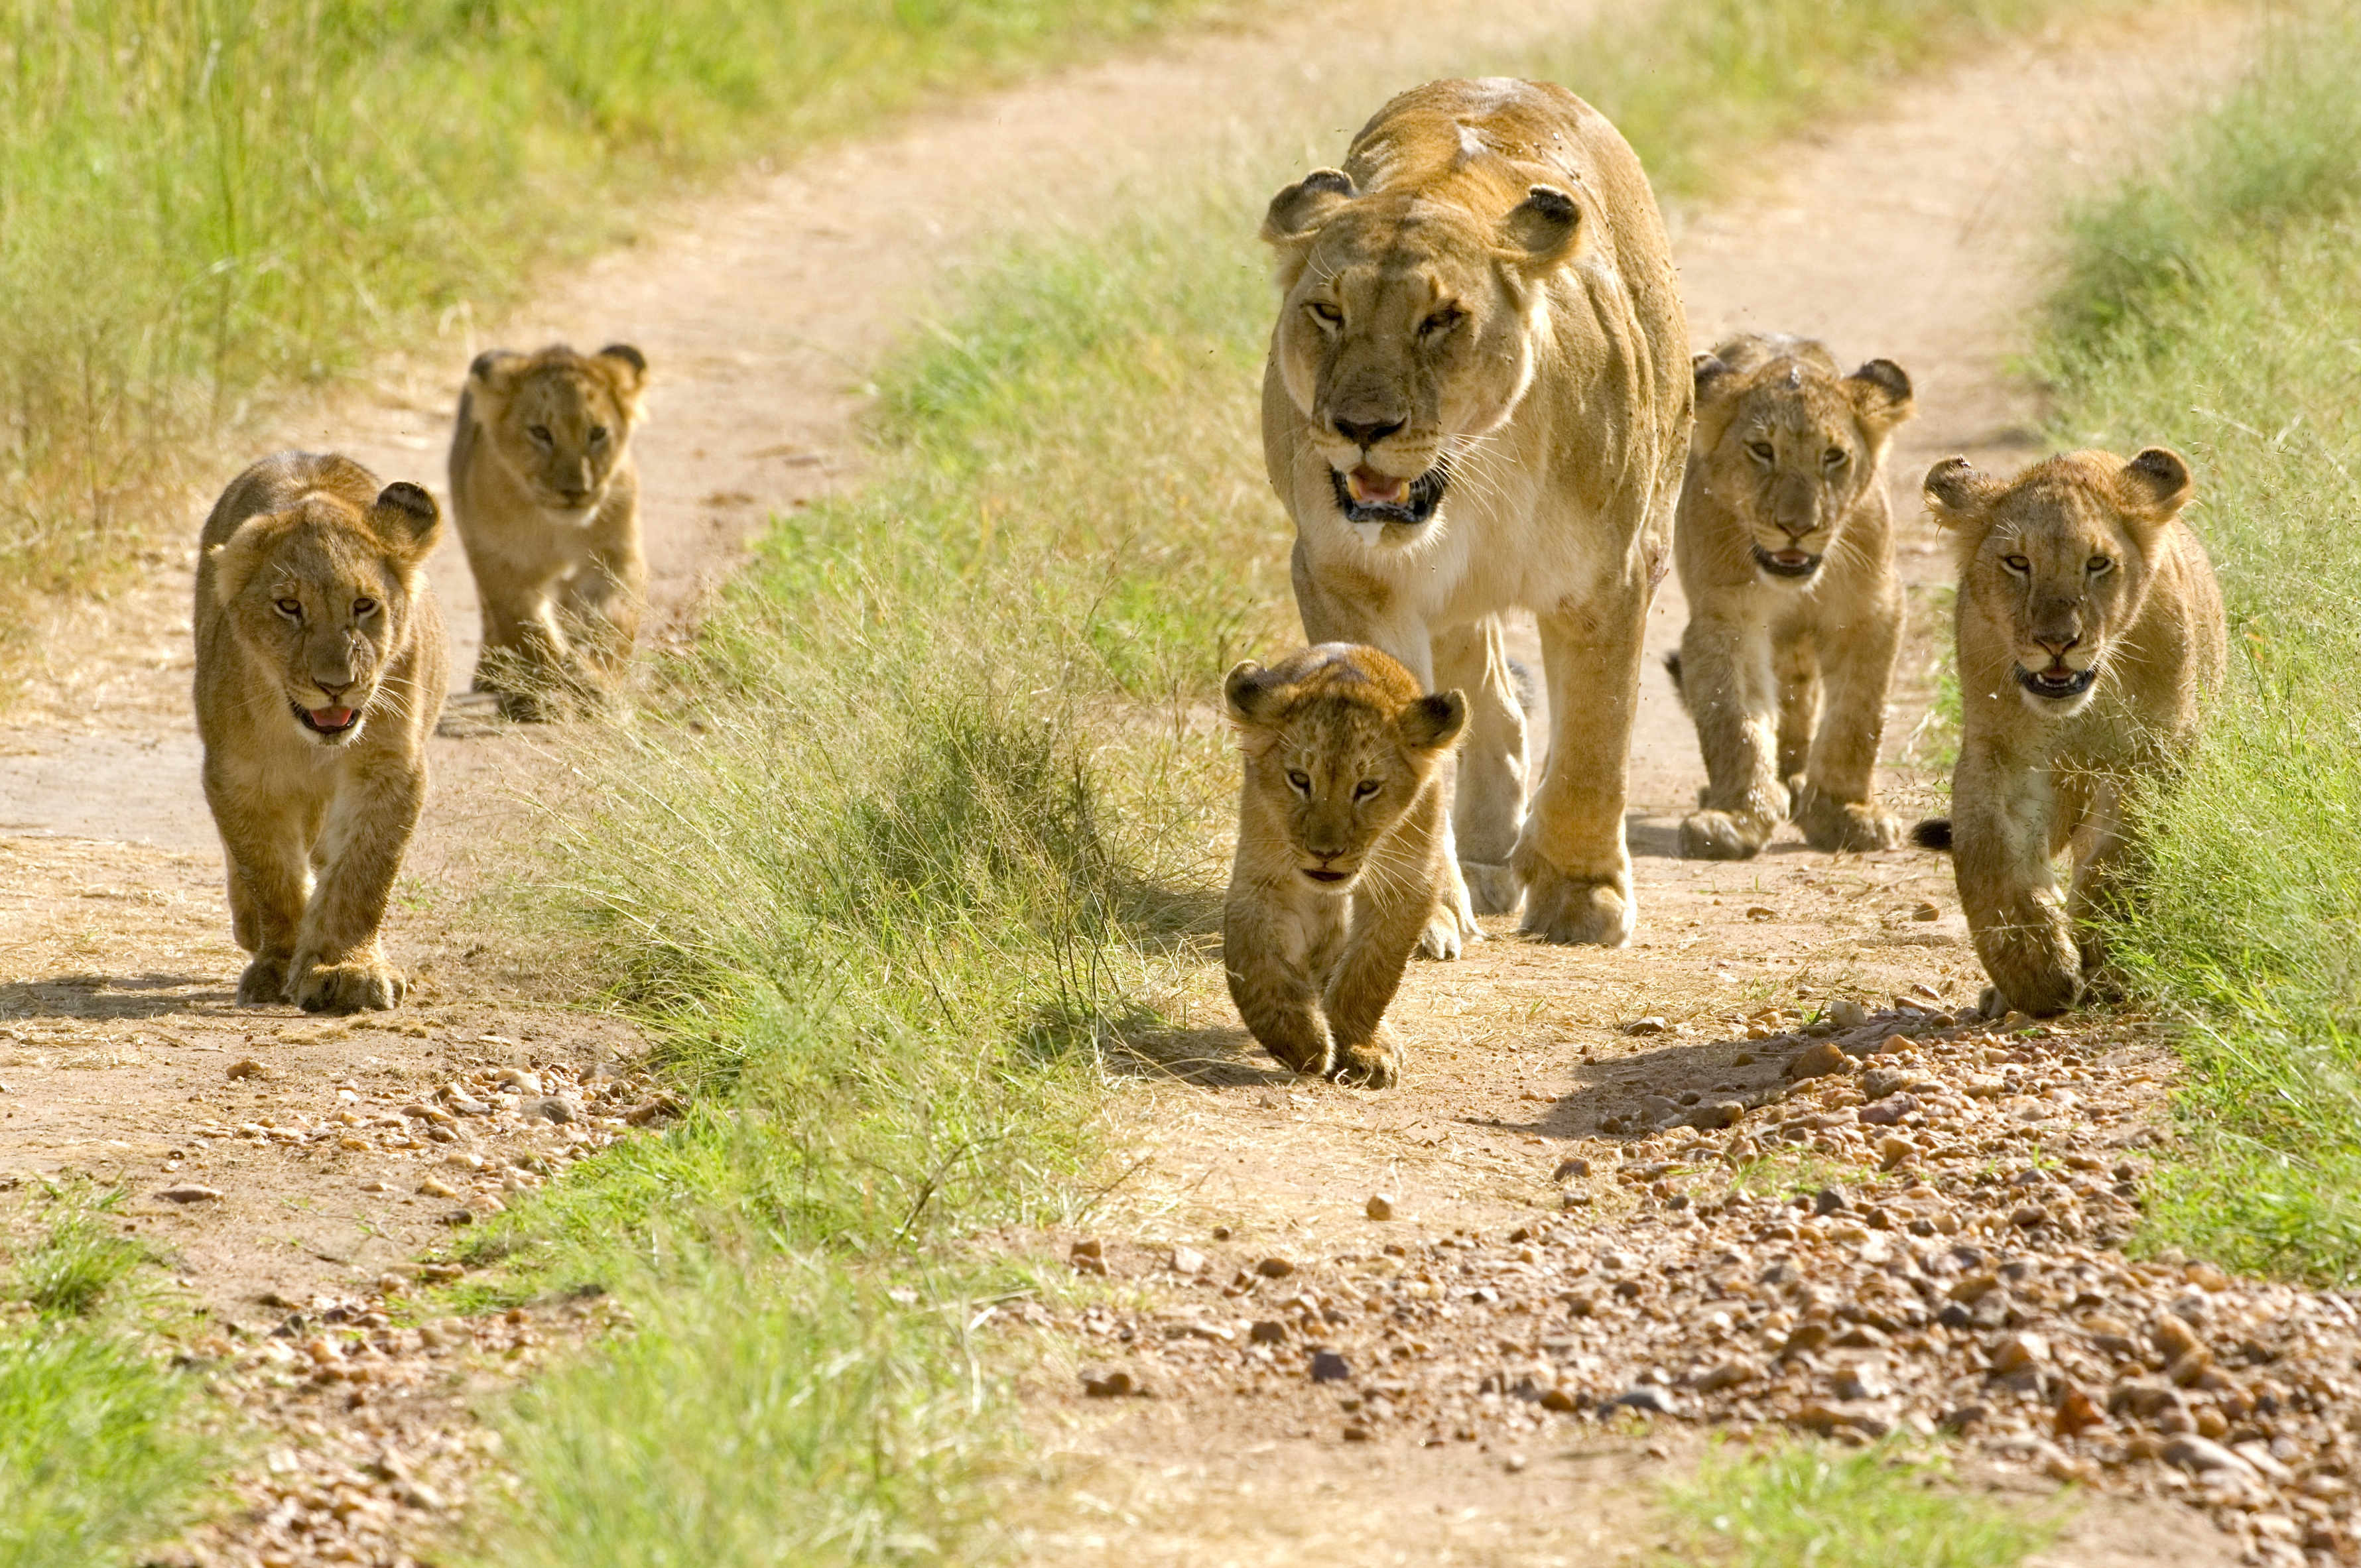 72062 download wallpaper Animals, Lion Cubs, Cubs, Young, Walking, Walk, Lions screensavers and pictures for free